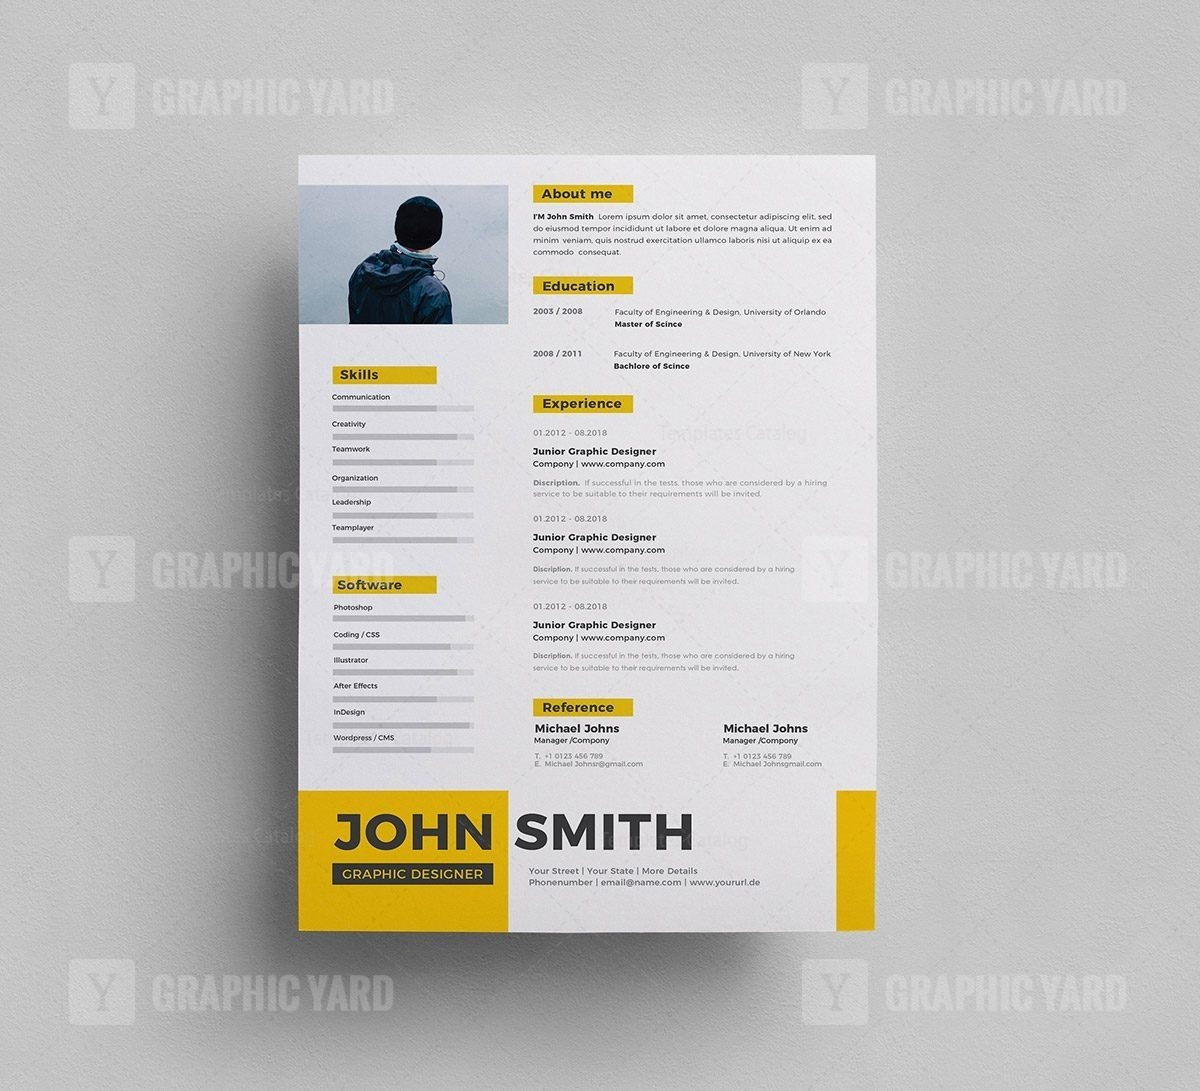 Free PSD Resume Template - Graphic Yard